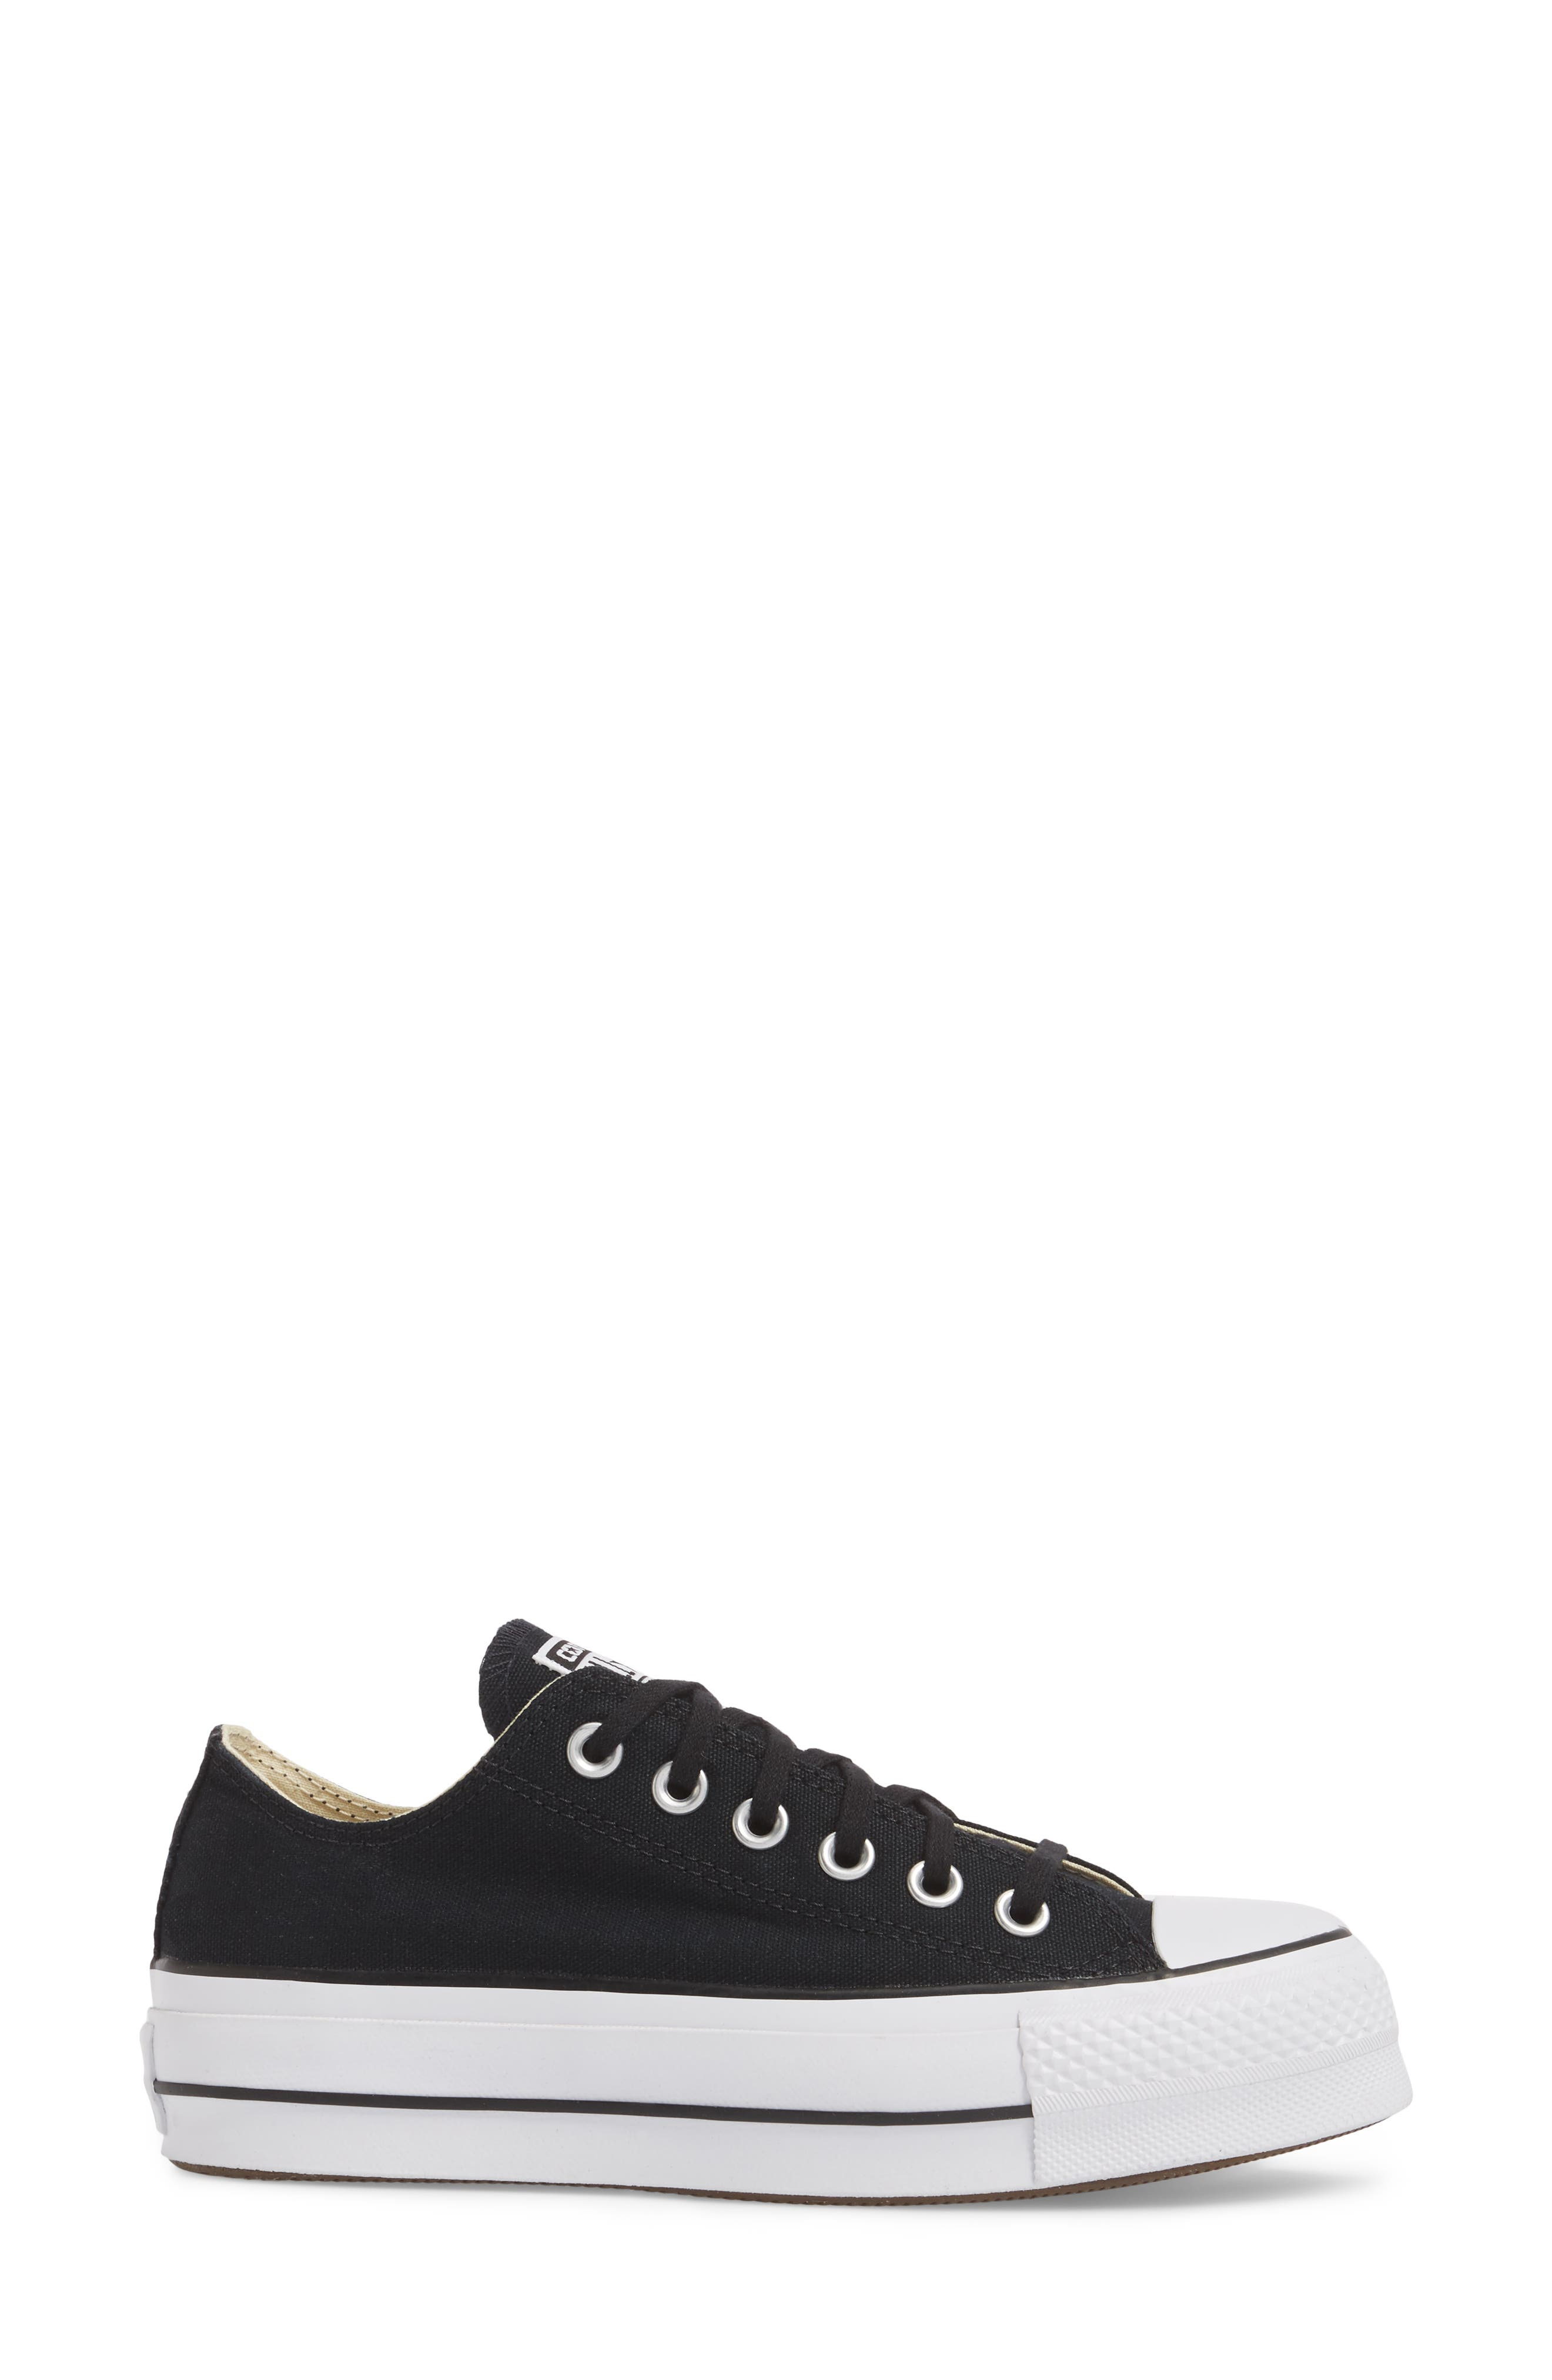 CONVERSE, Chuck Taylor<sup>®</sup> All Star<sup>®</sup> Platform Sneaker, Alternate thumbnail 3, color, BLACK/ WHITE/ WHITE